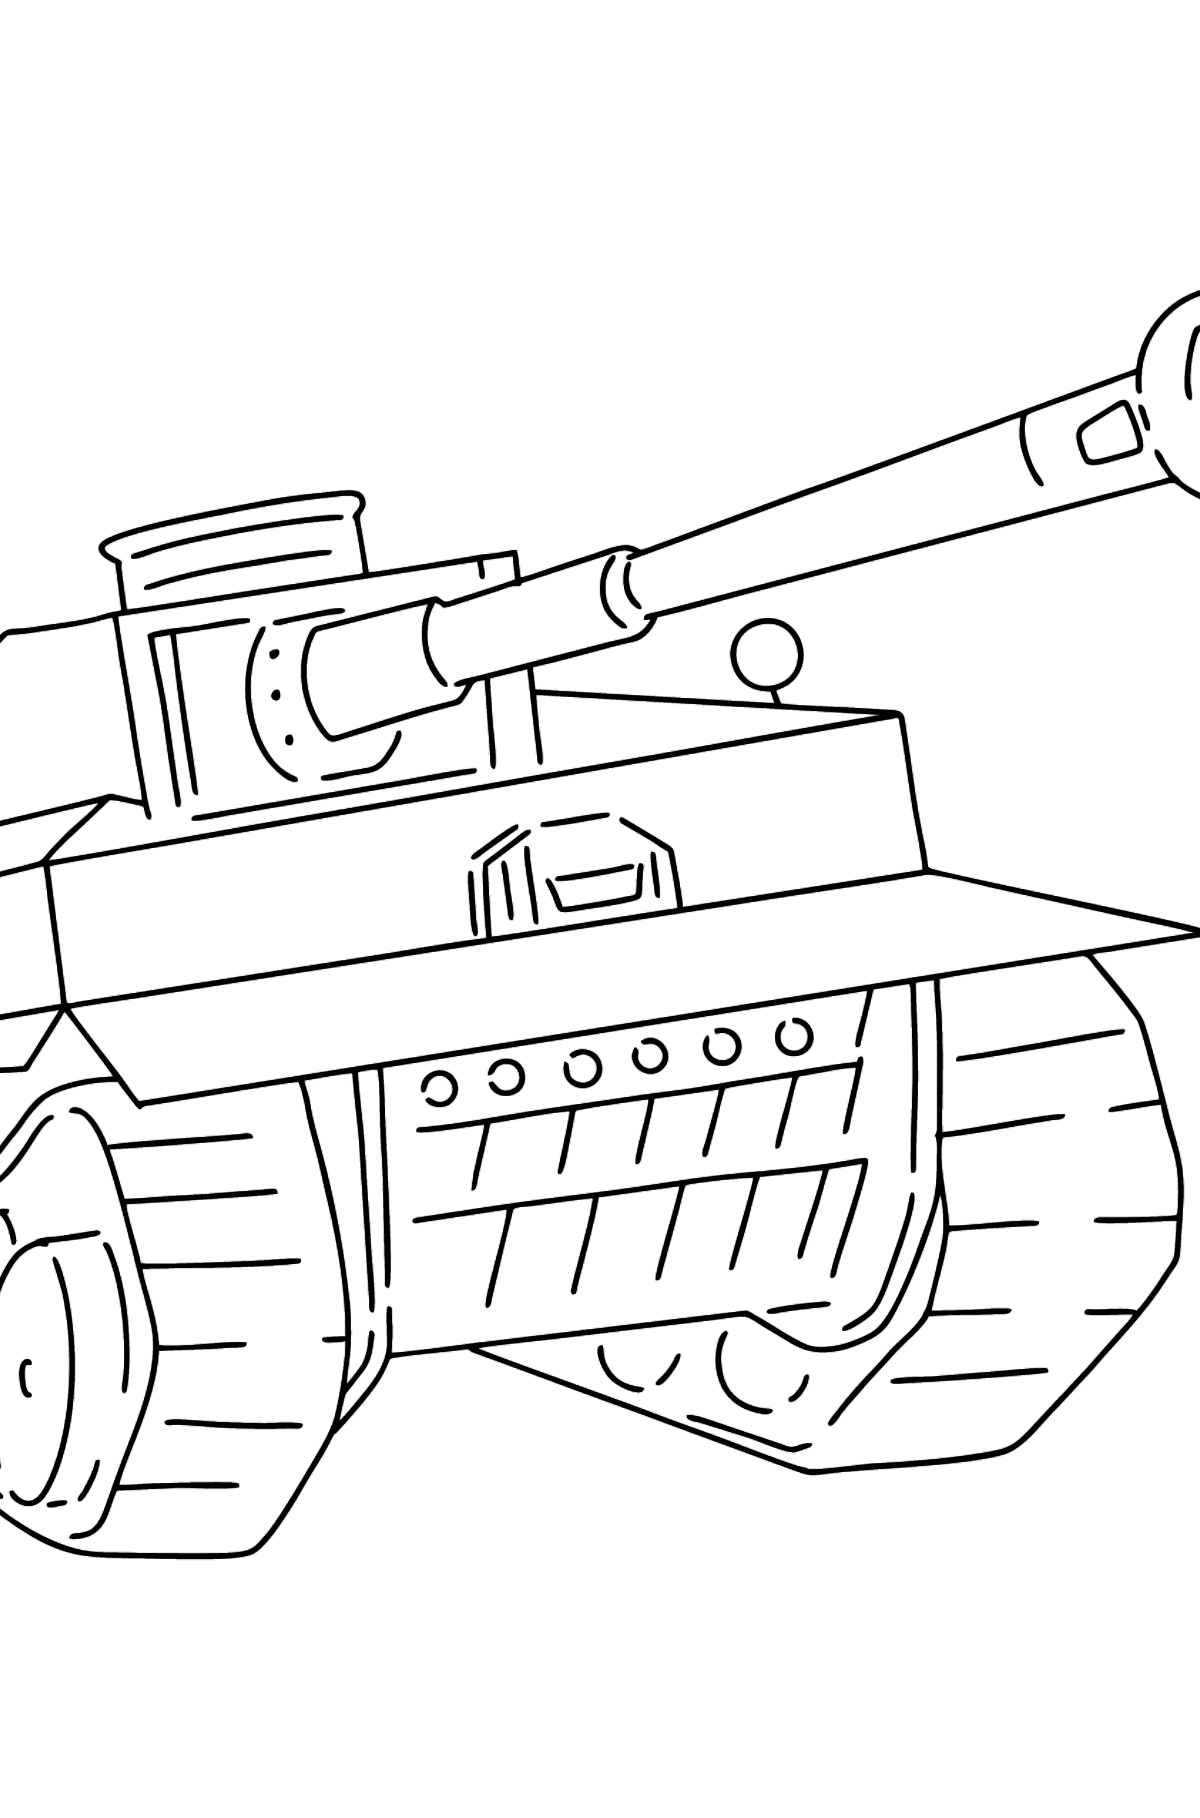 Tank Panther coloring page - Coloring Pages for Kids